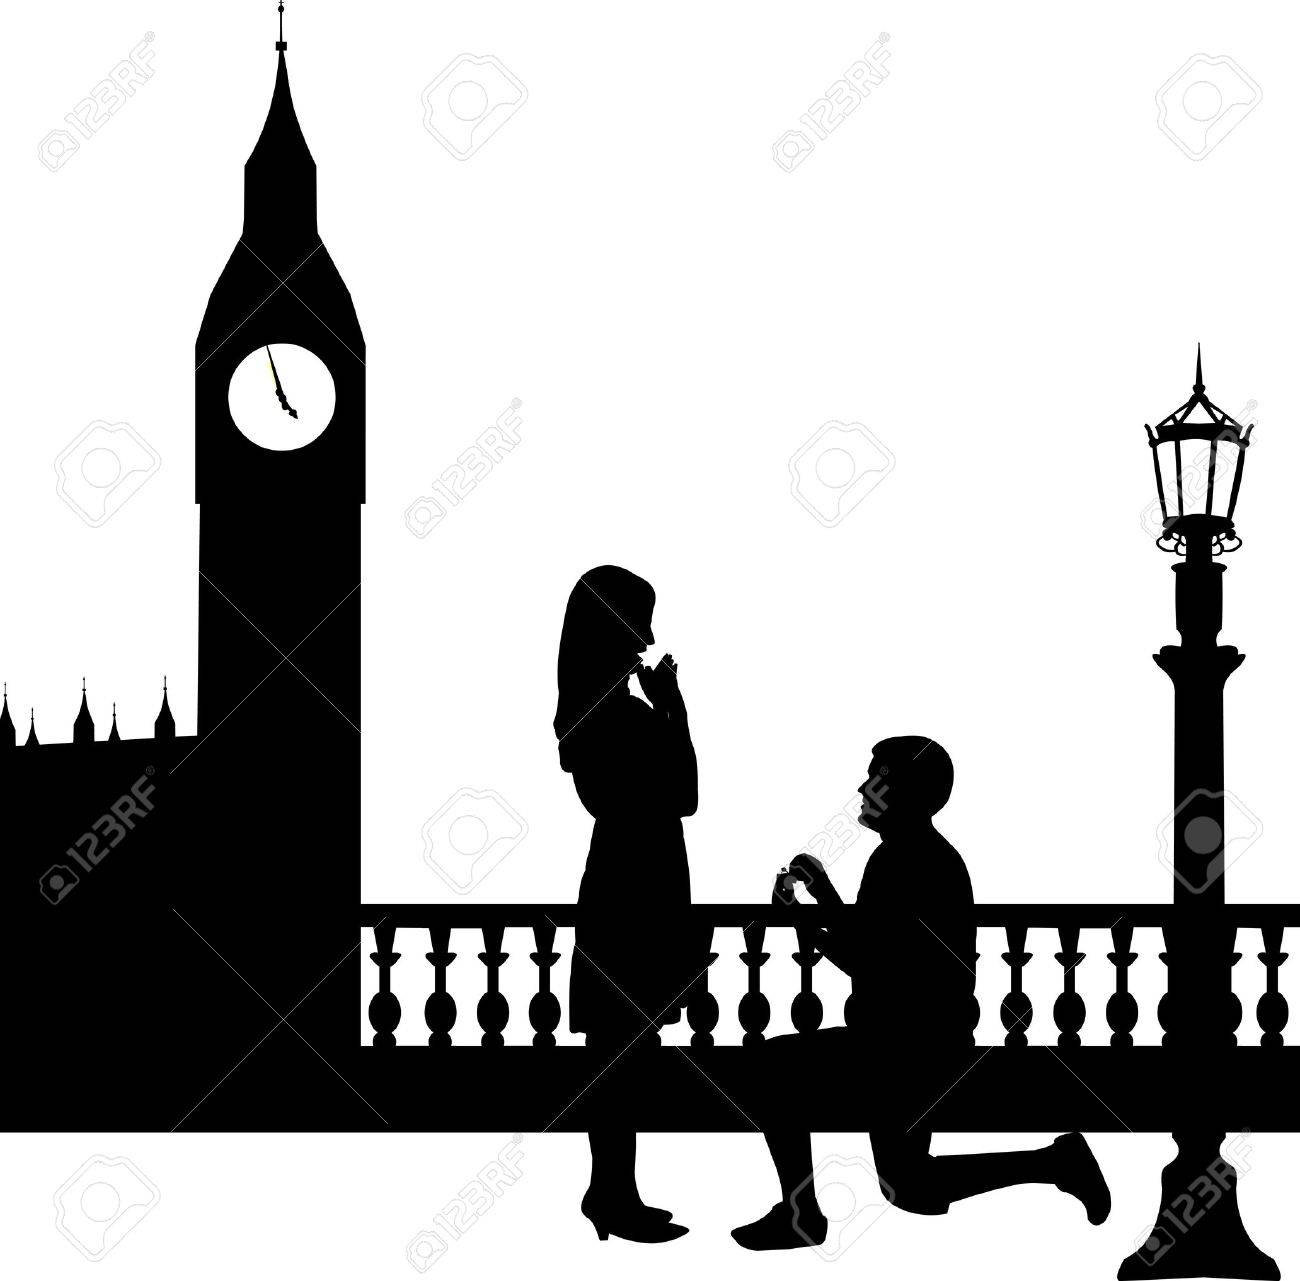 Romantic proposal in London in front of Big Ben of a man proposing to a woman while standing on one knee silhouettes, one in the series of similar images Stock Vector - 19116605